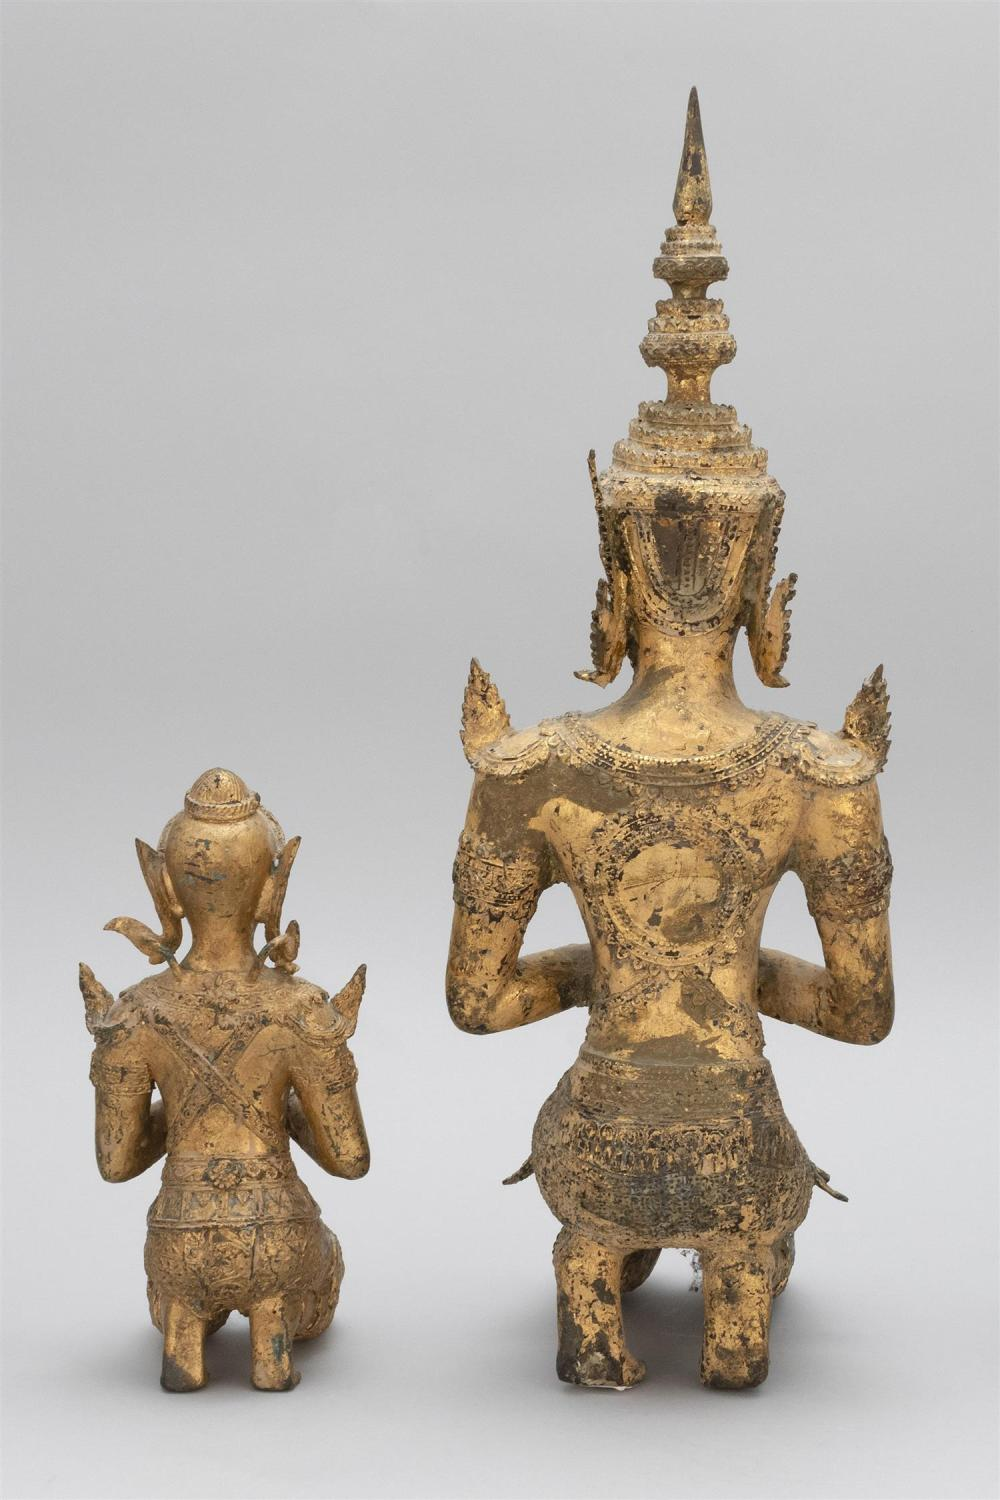 """Lot 972: TWO THAI GILT-BRONZE FIGURES OF KNEELING BUDDHAS Heights 10"""" and 19.5""""."""